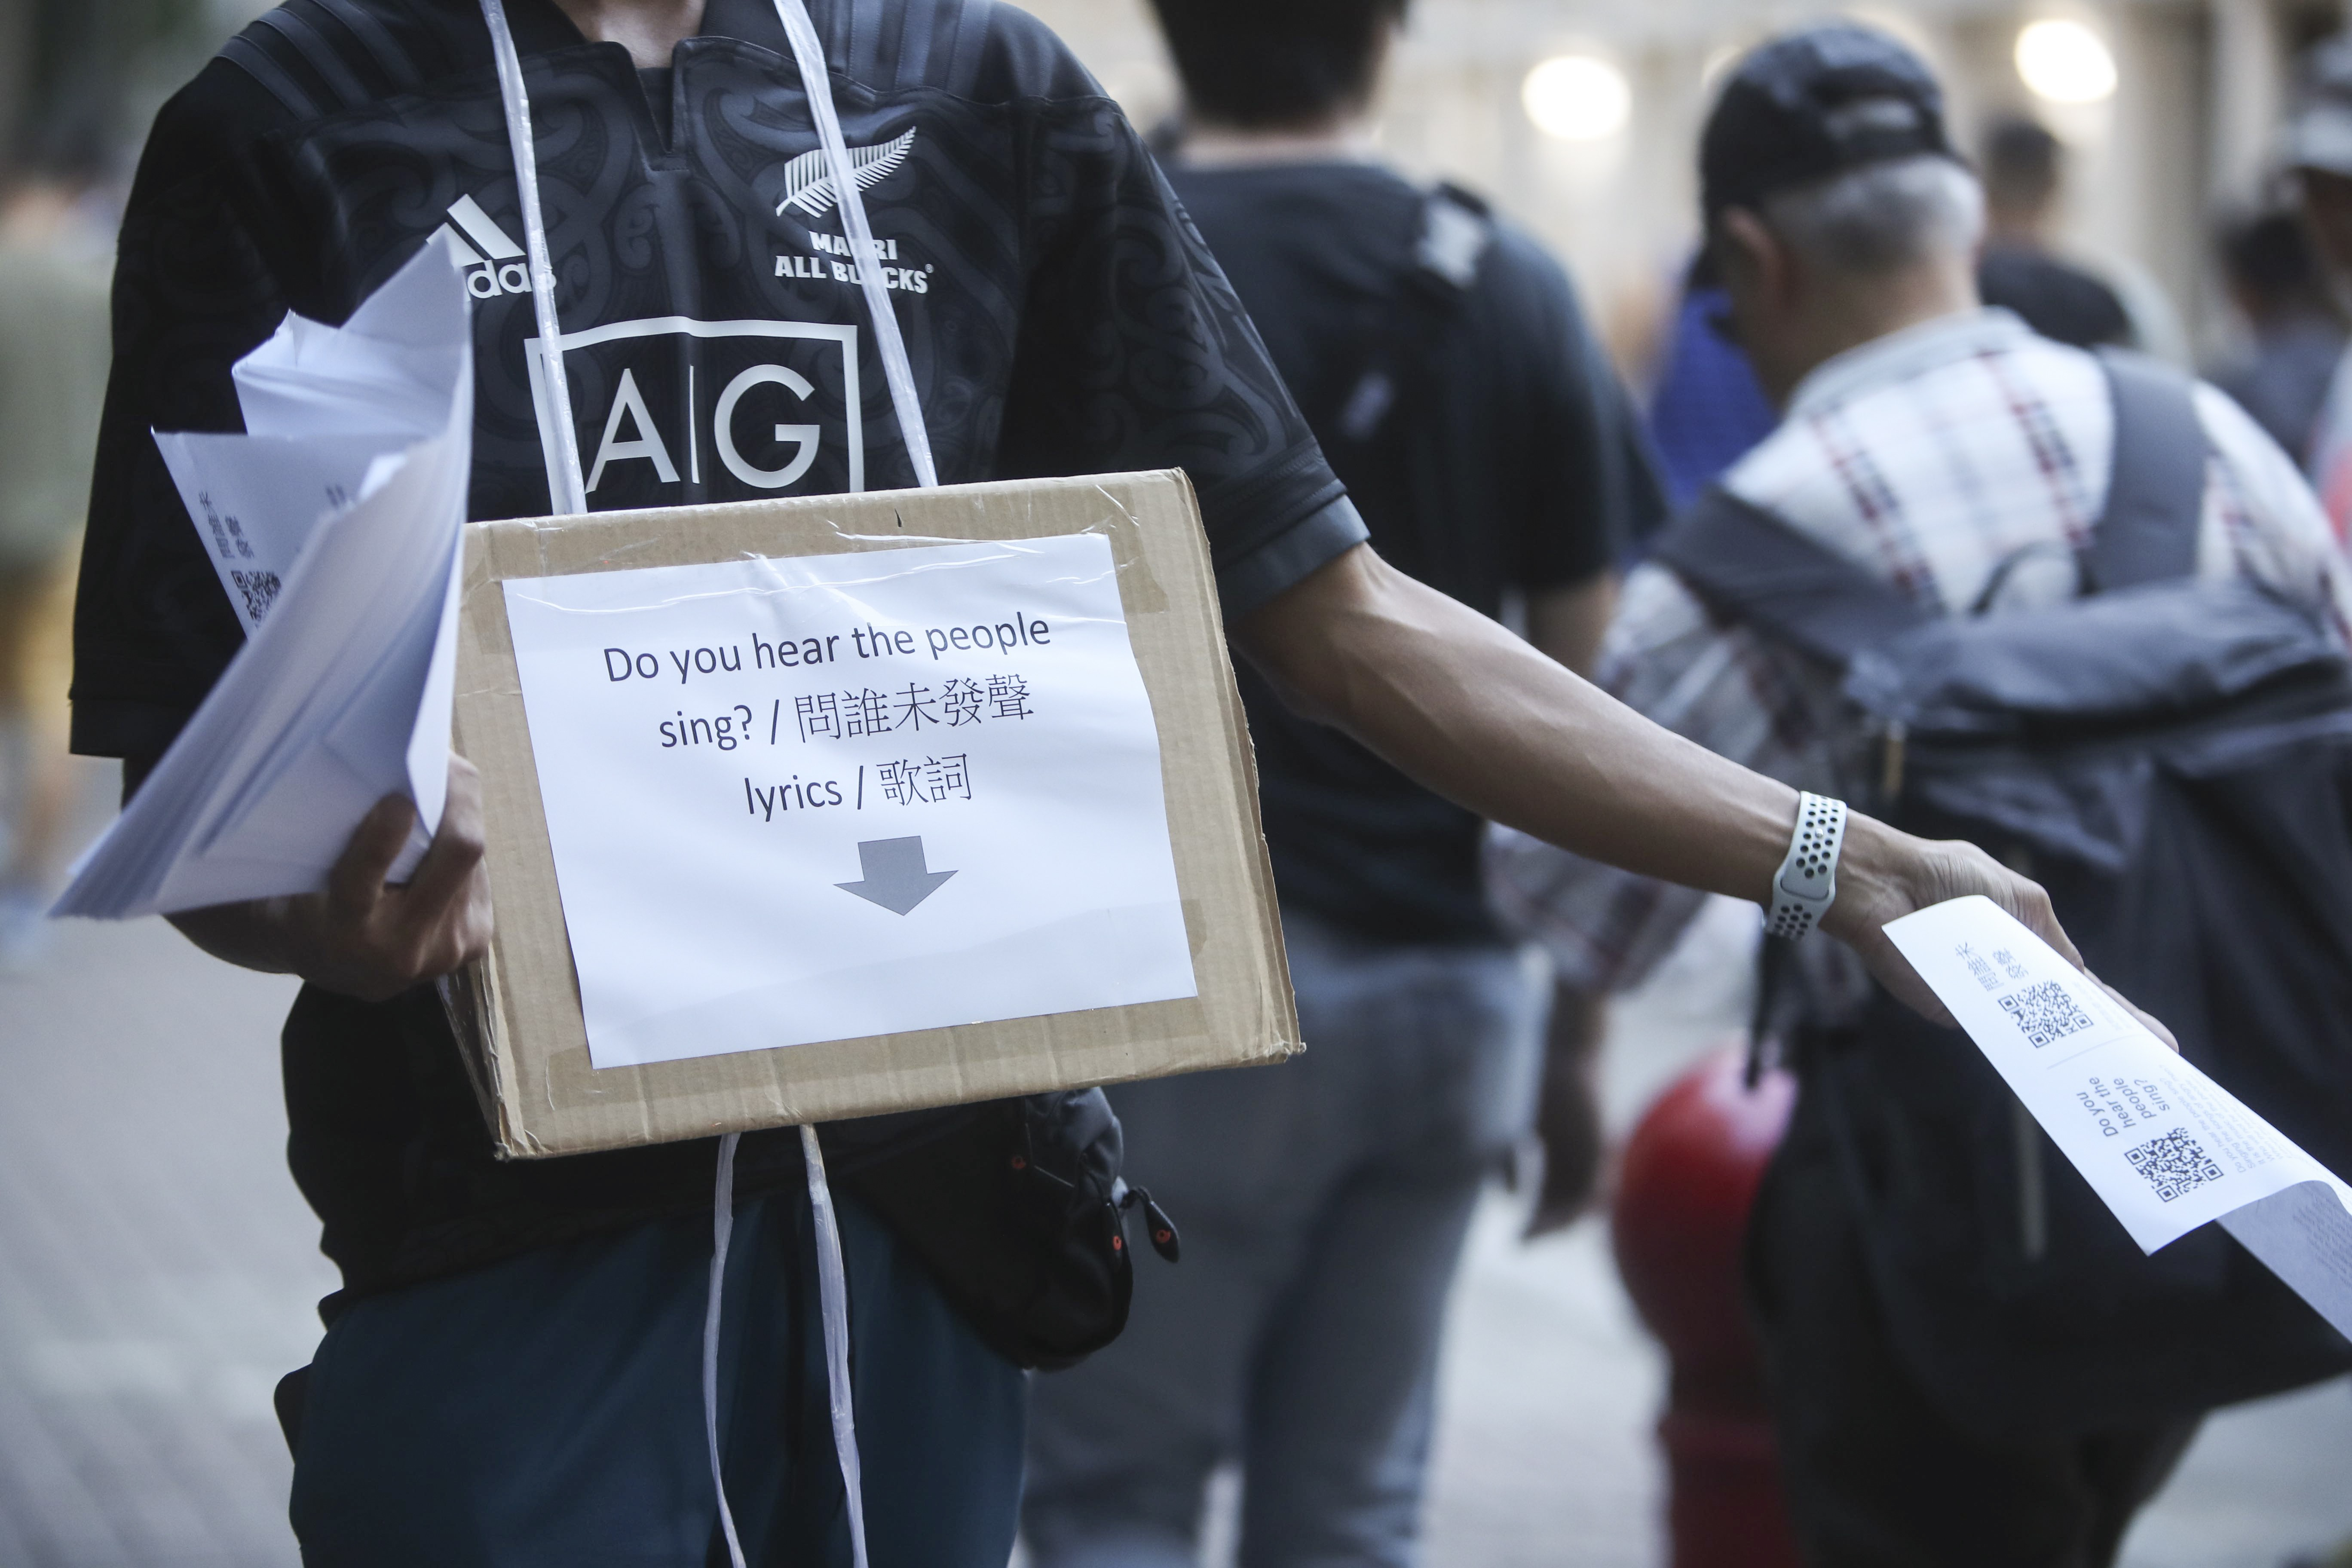 Football Fans Call For Free Hong Kong In Anti Government Protest At Manchester City V Kitchee Game South China Morning Post